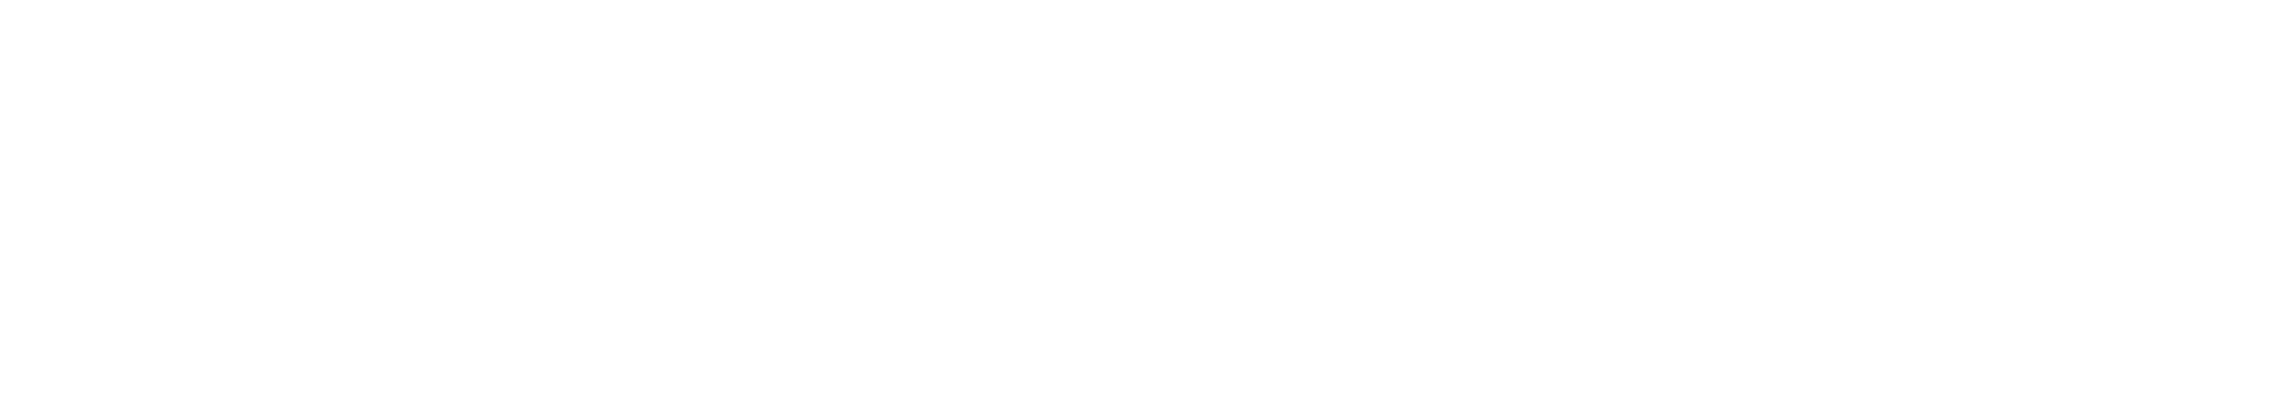 Africa Aviation Executive Services (AAES)